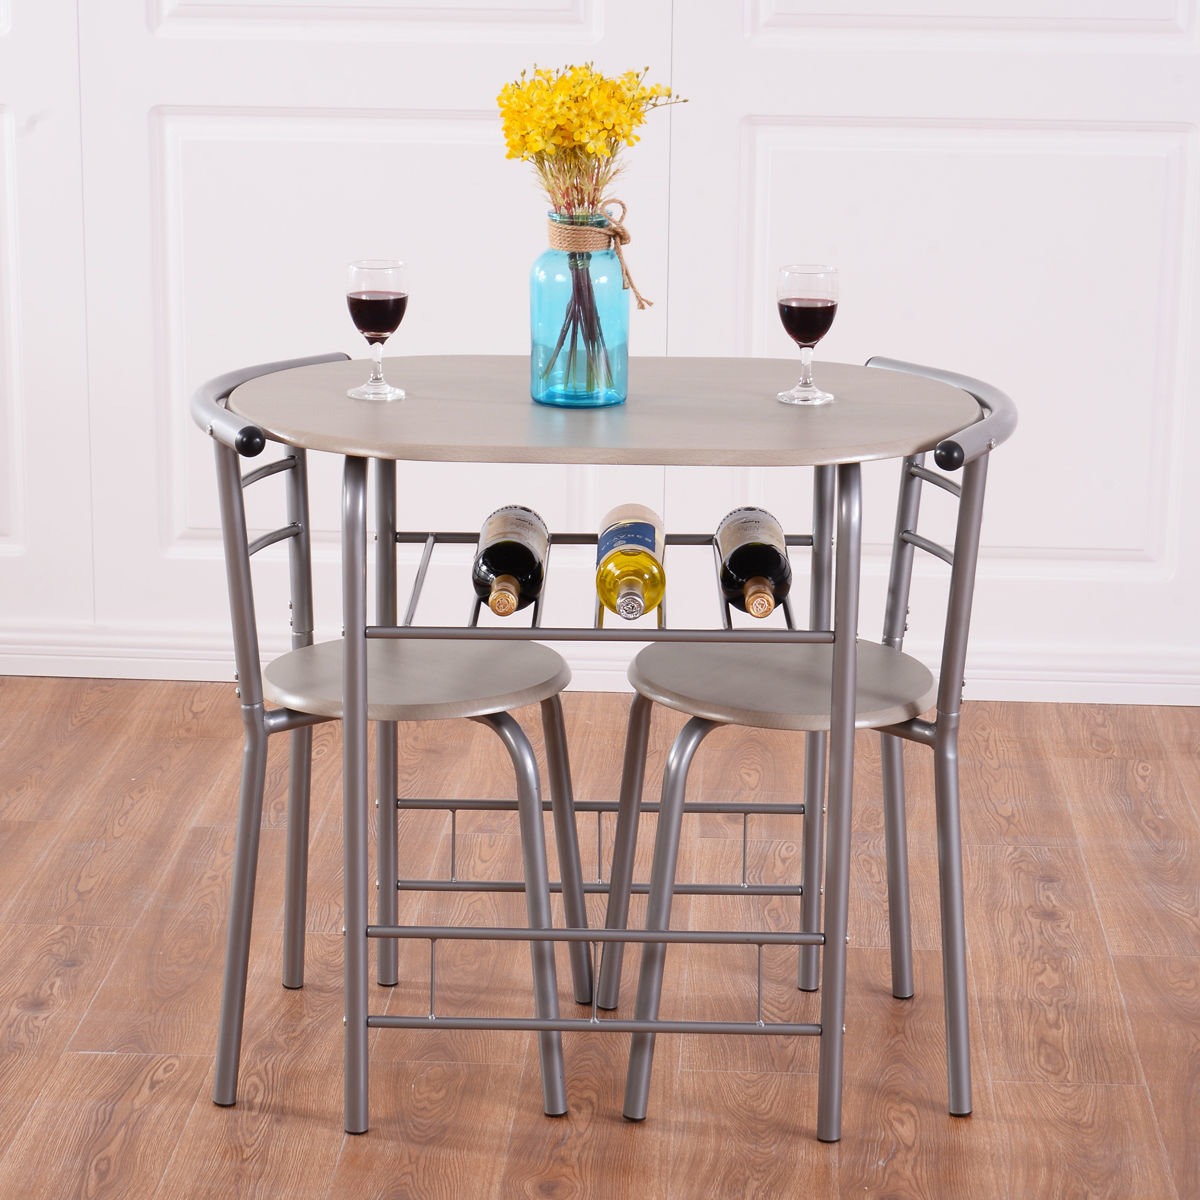 Isolde 3 Piece Dining Sets Pertaining To Well Liked Winston Porter Strock 3 Piece Dining Set & Reviews (View 5 of 25)